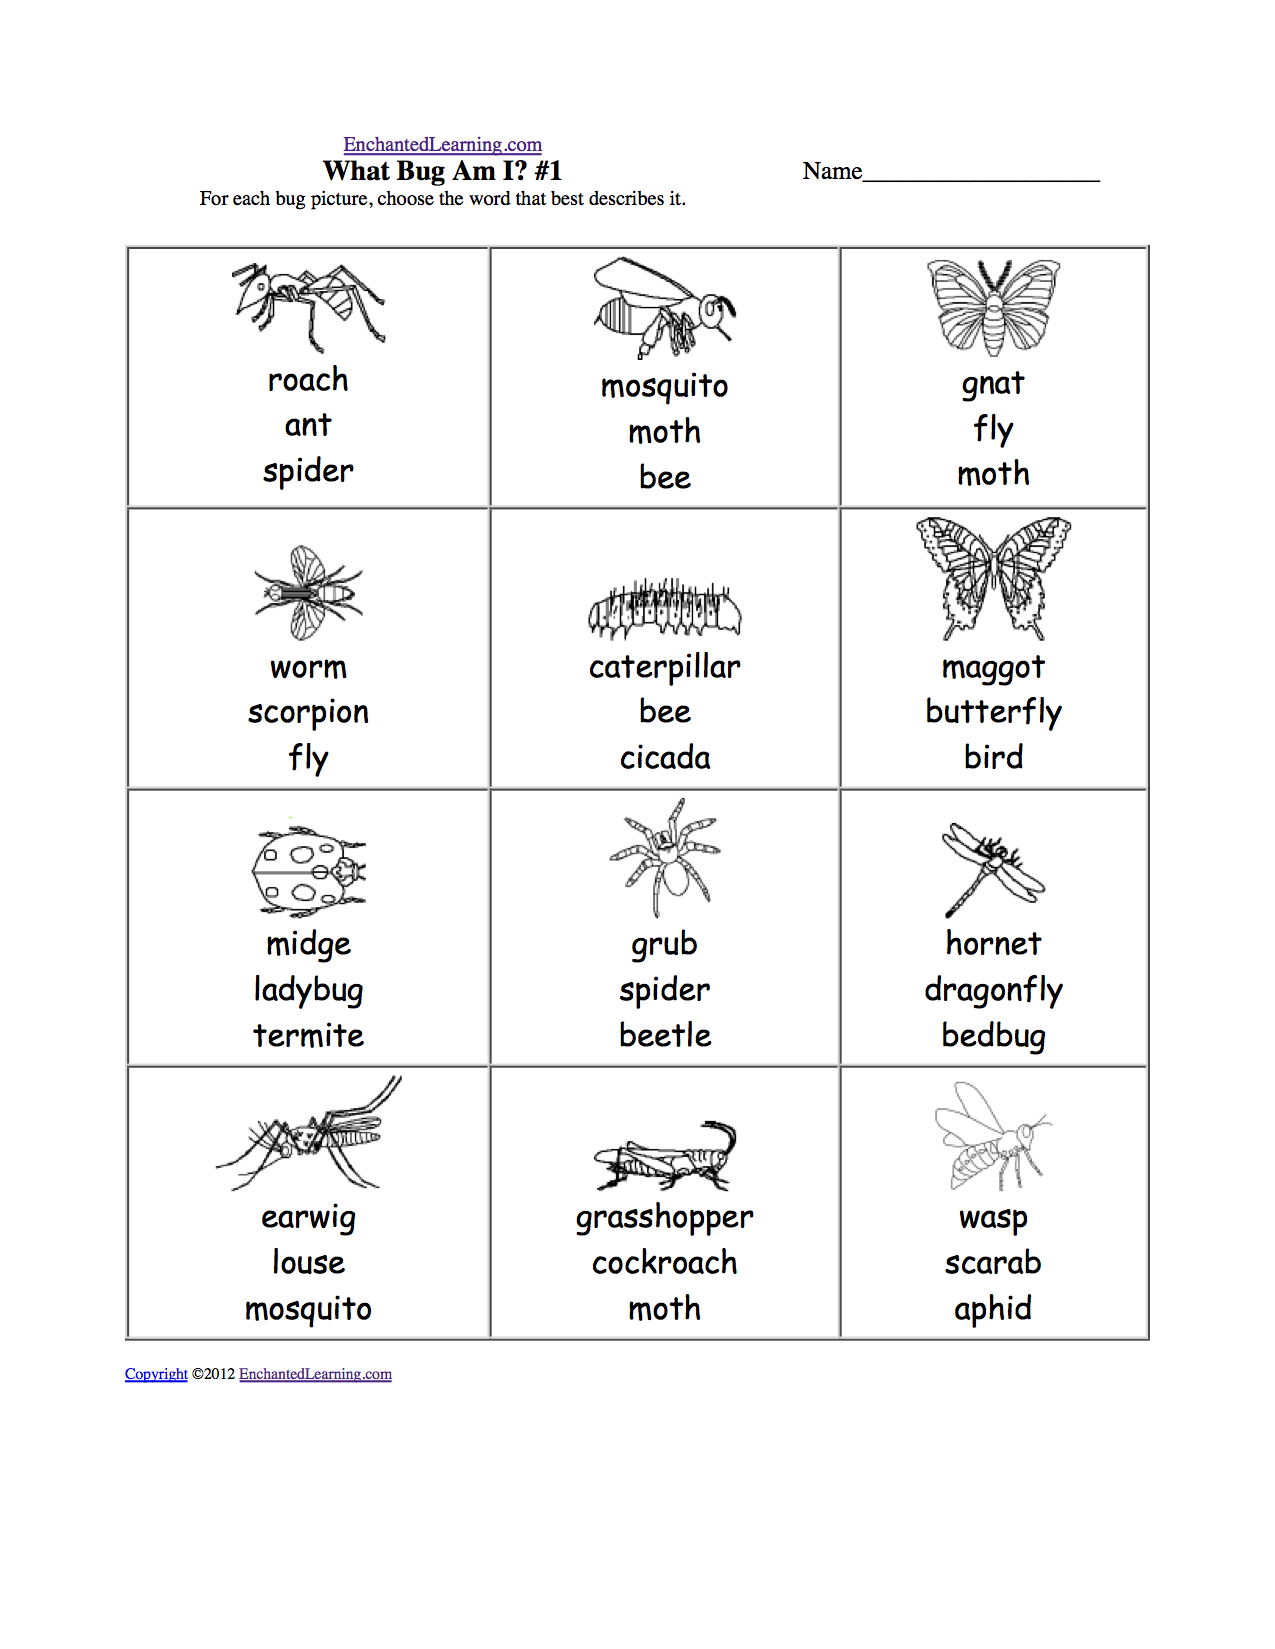 Aldiablosus  Gorgeous What Am I Worksheet Printouts  Enchantedlearningcom With Handsome Worksheets On Area Besides Worksheet Measurement Furthermore Multiplying By  Worksheet With Astonishing Create A Worksheet Free Also Writing And Solving Inequalities Worksheet In Addition Box Plots Worksheets And Subtraction Borrowing Worksheets As Well As Og Word Family Worksheets Additionally Ir Er Ur Worksheets From Enchantedlearningcom With Aldiablosus  Handsome What Am I Worksheet Printouts  Enchantedlearningcom With Astonishing Worksheets On Area Besides Worksheet Measurement Furthermore Multiplying By  Worksheet And Gorgeous Create A Worksheet Free Also Writing And Solving Inequalities Worksheet In Addition Box Plots Worksheets From Enchantedlearningcom